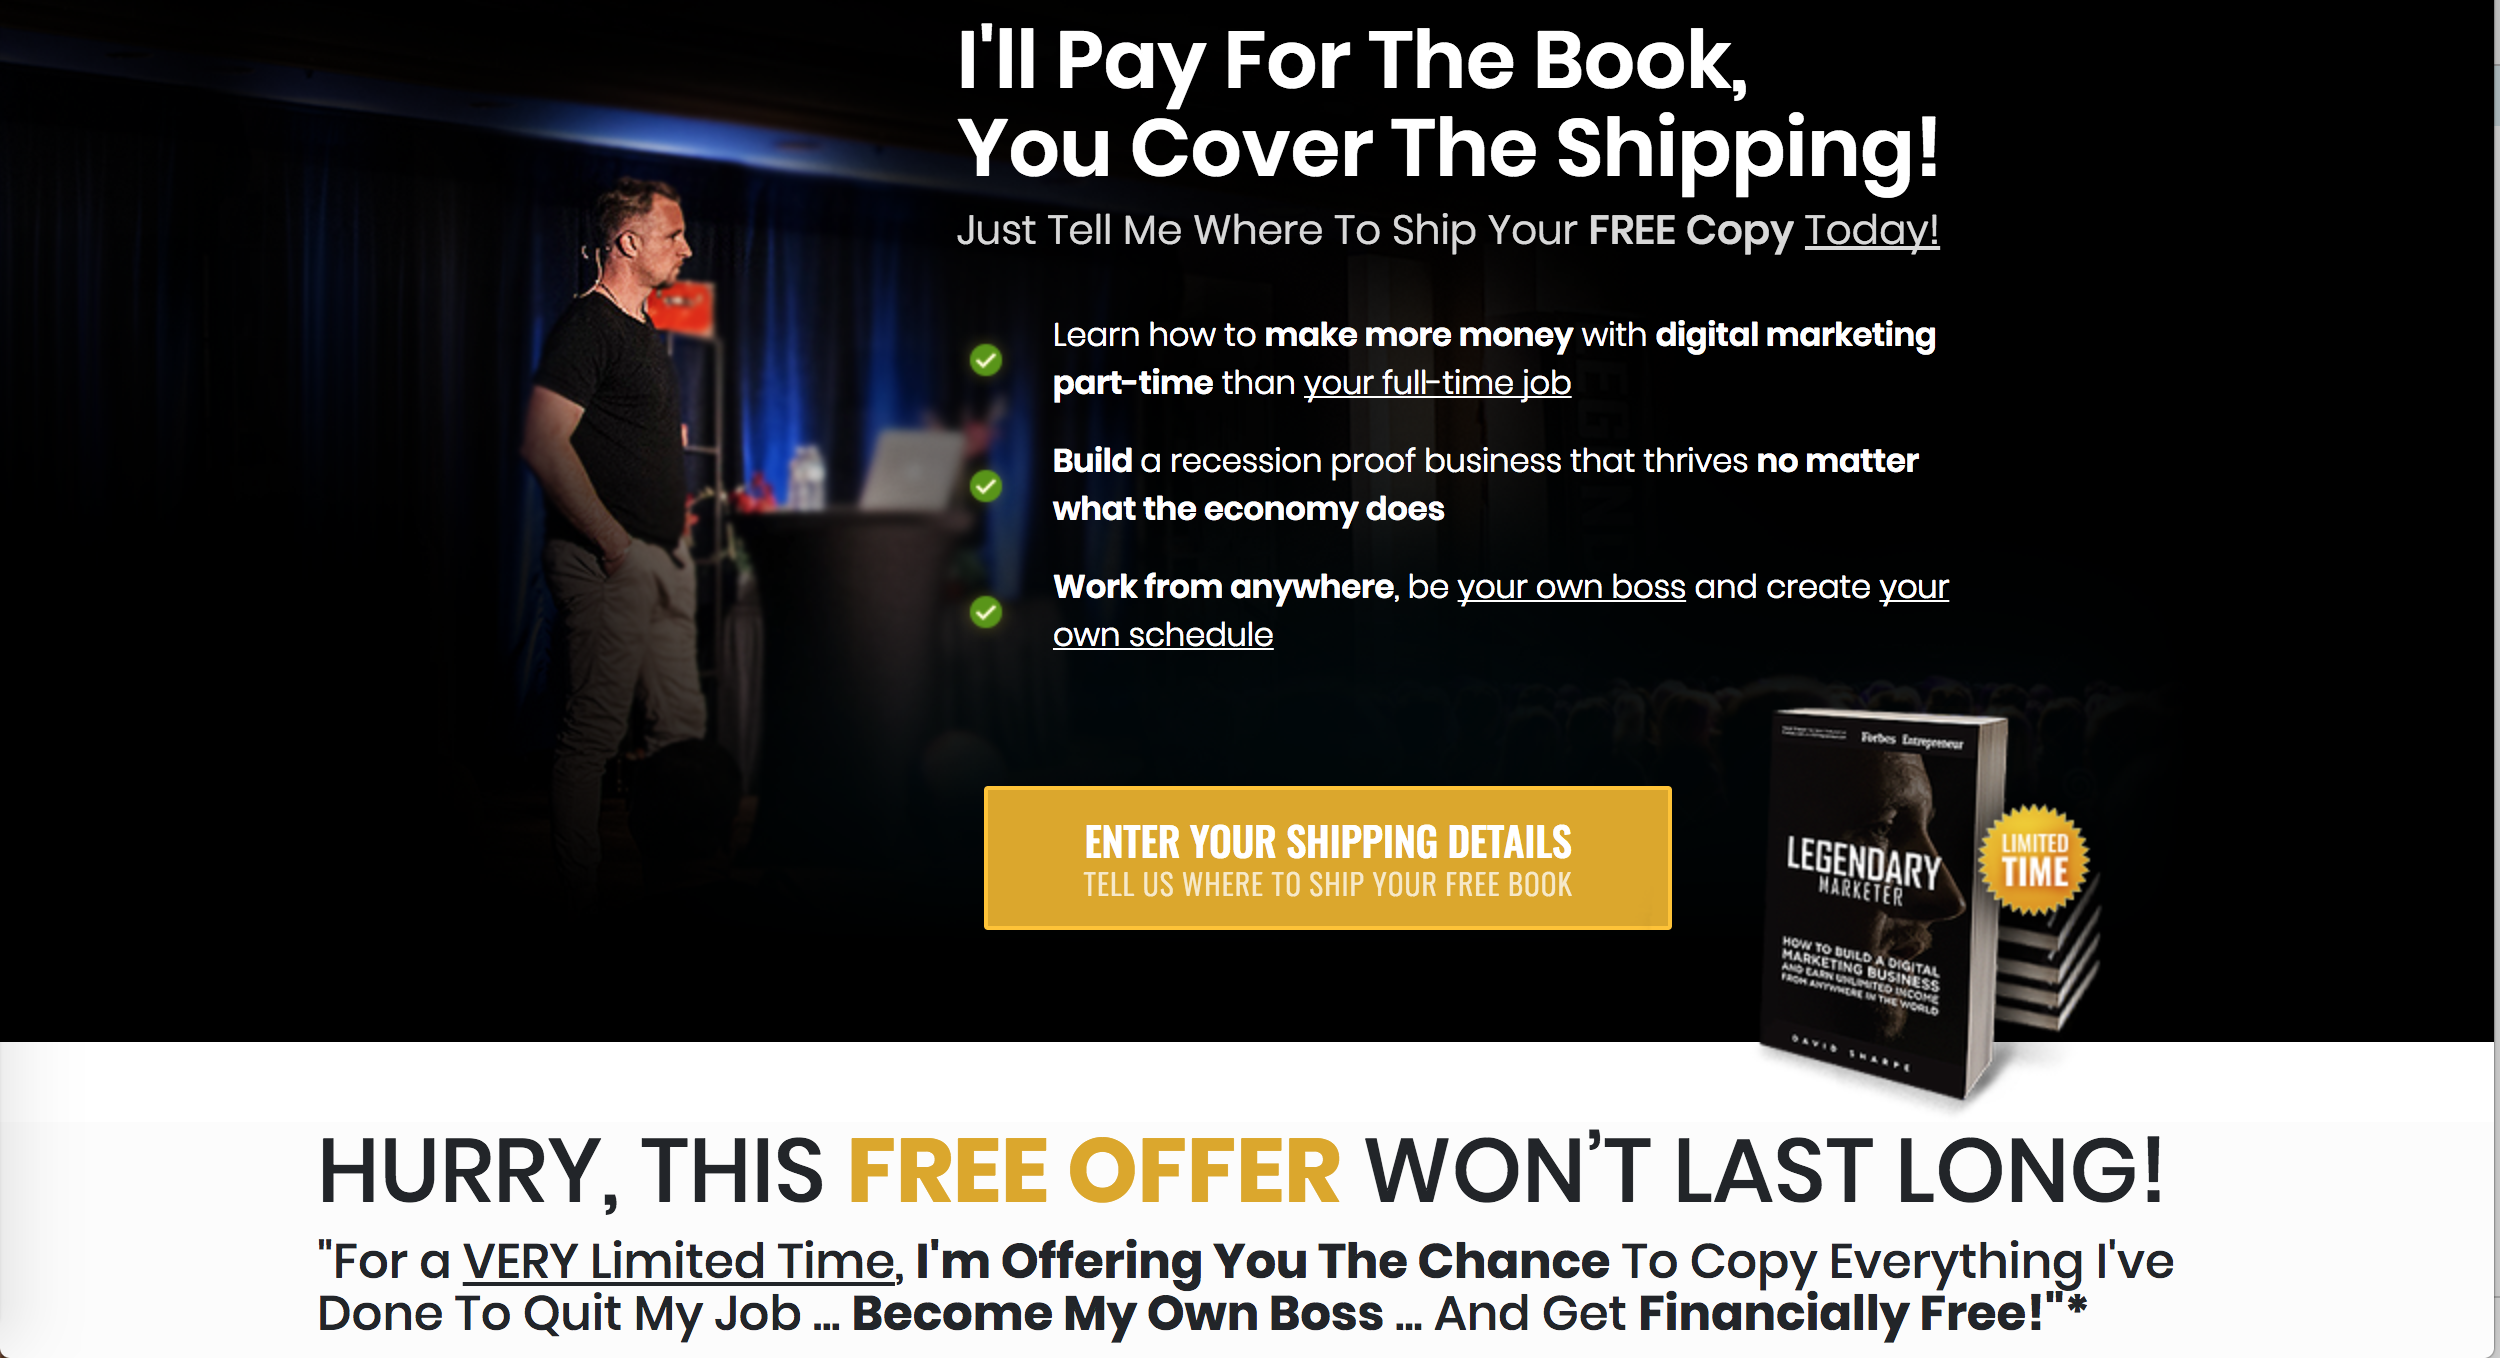 Cheap Internet Marketing Program  Legendary Marketer Price Reduction